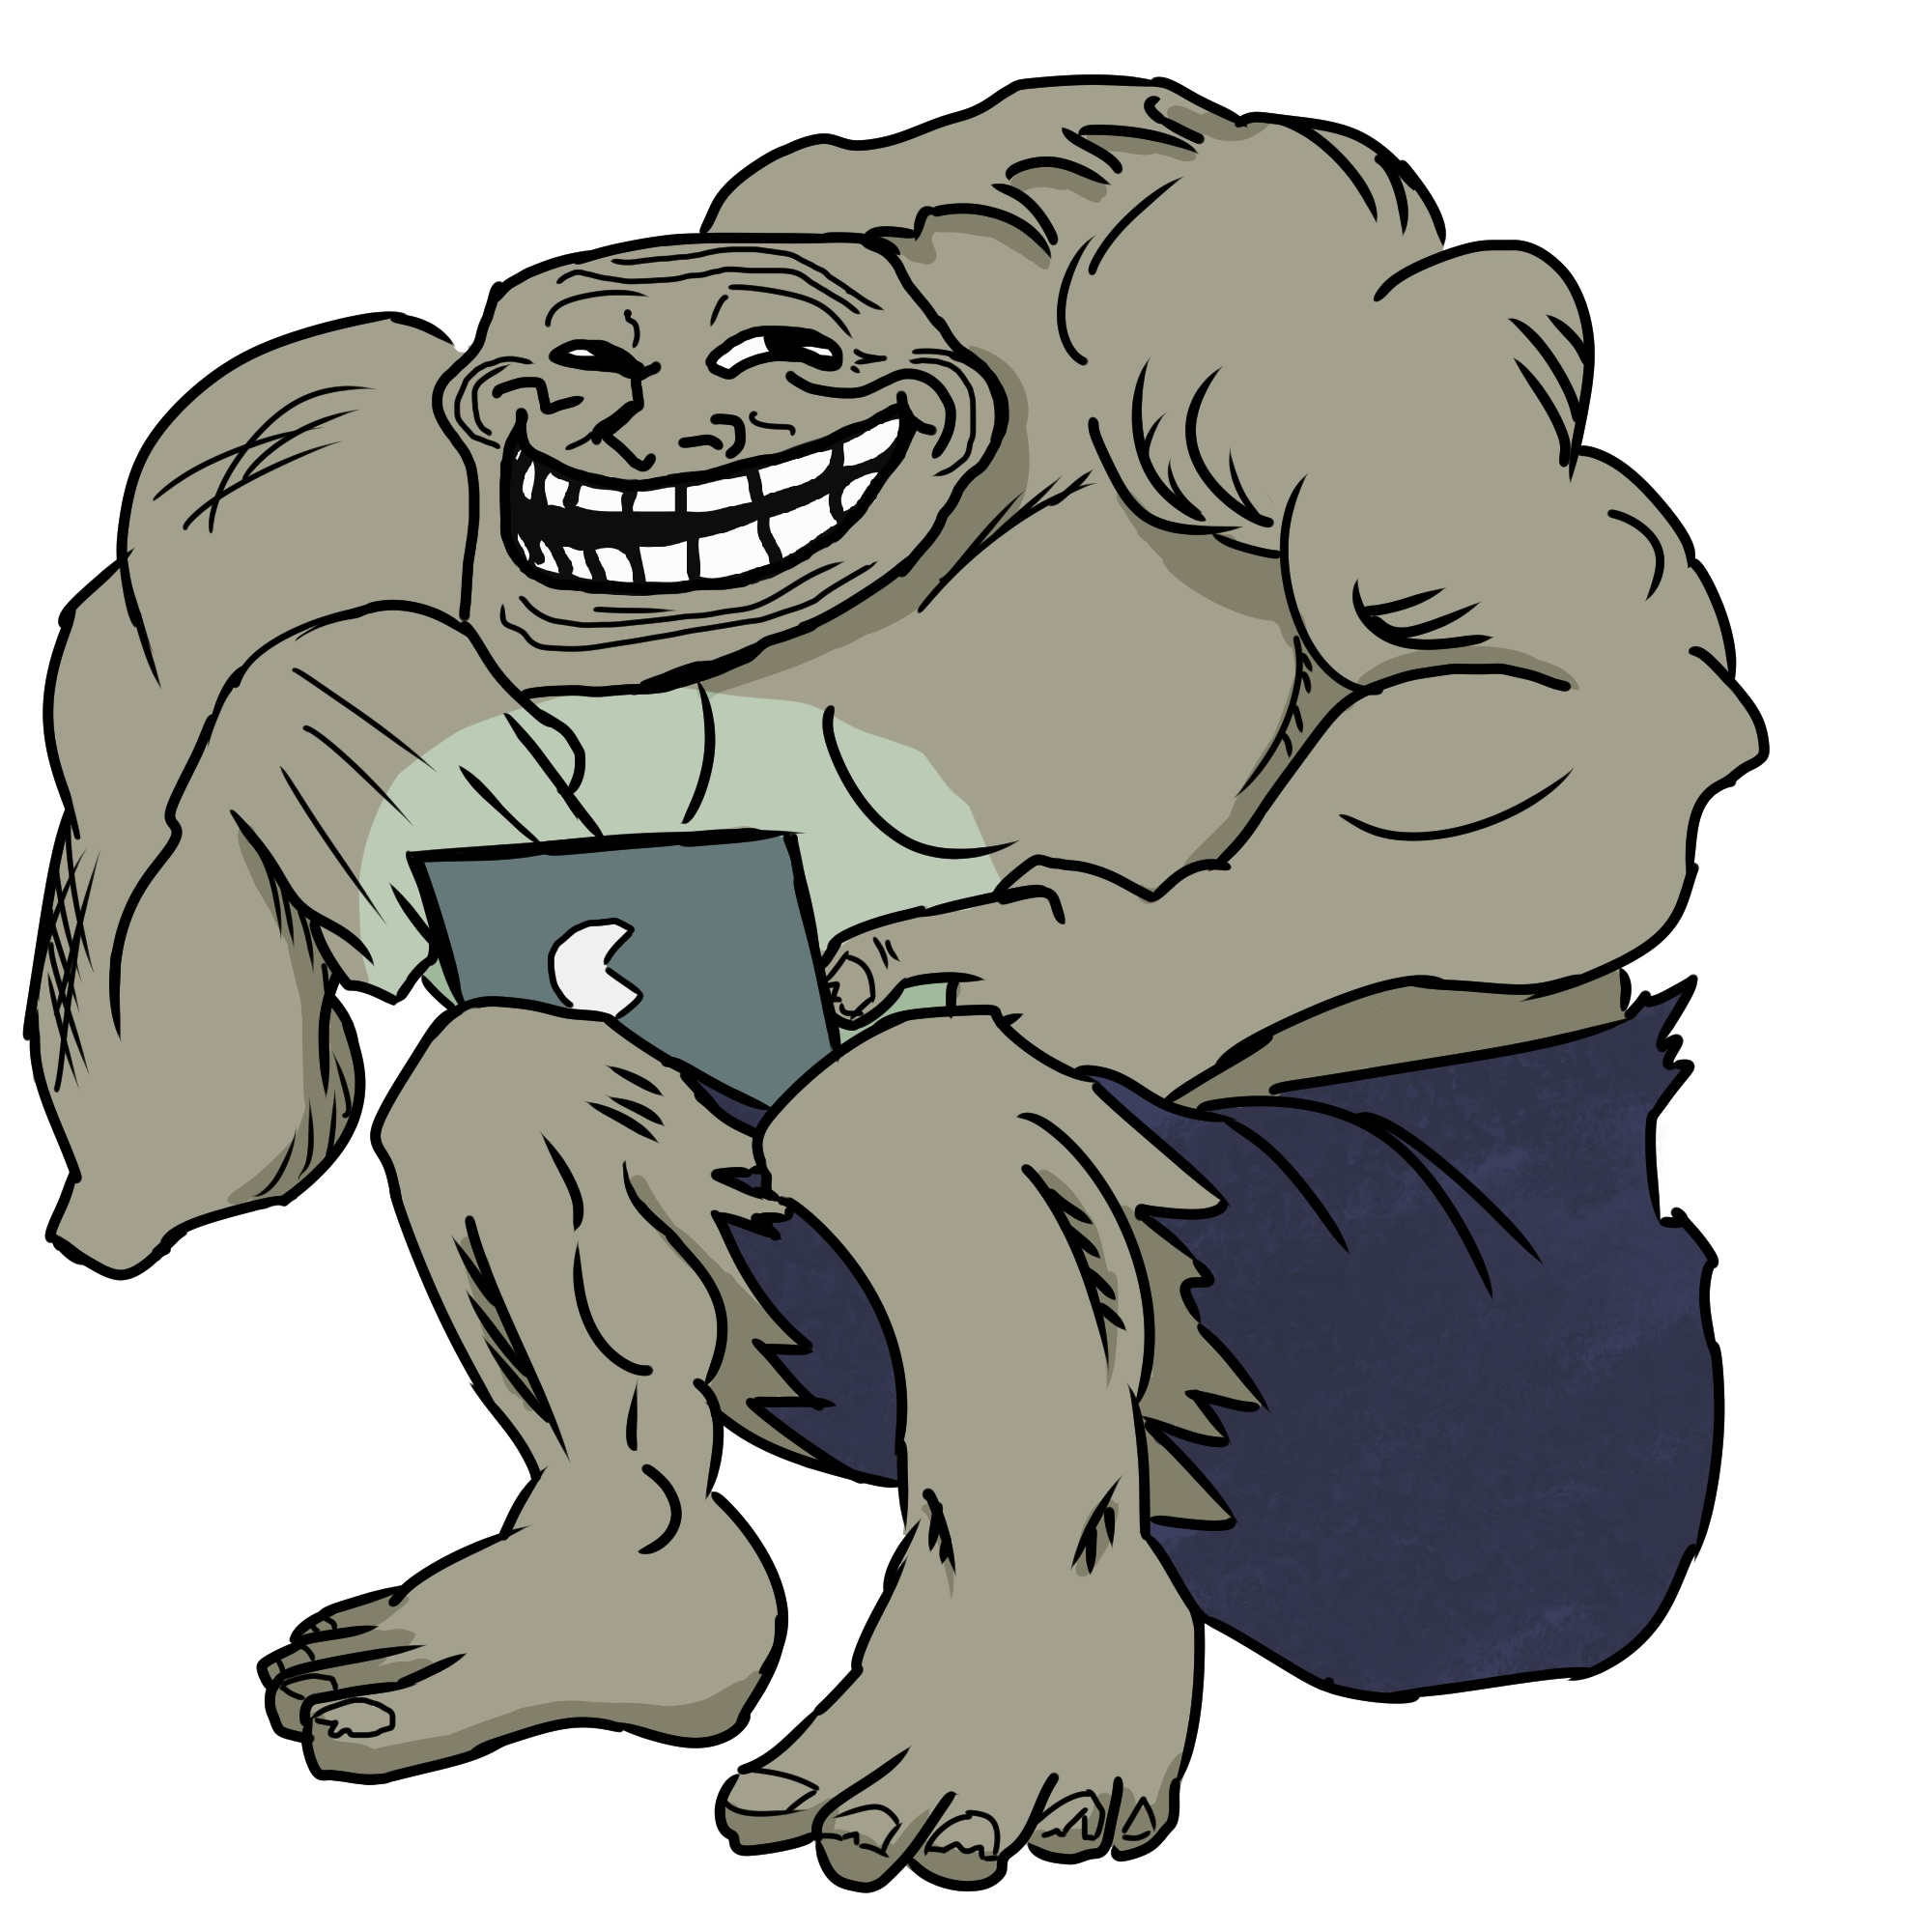 """Internet Troll"" from ""Men are Monsters"" series"